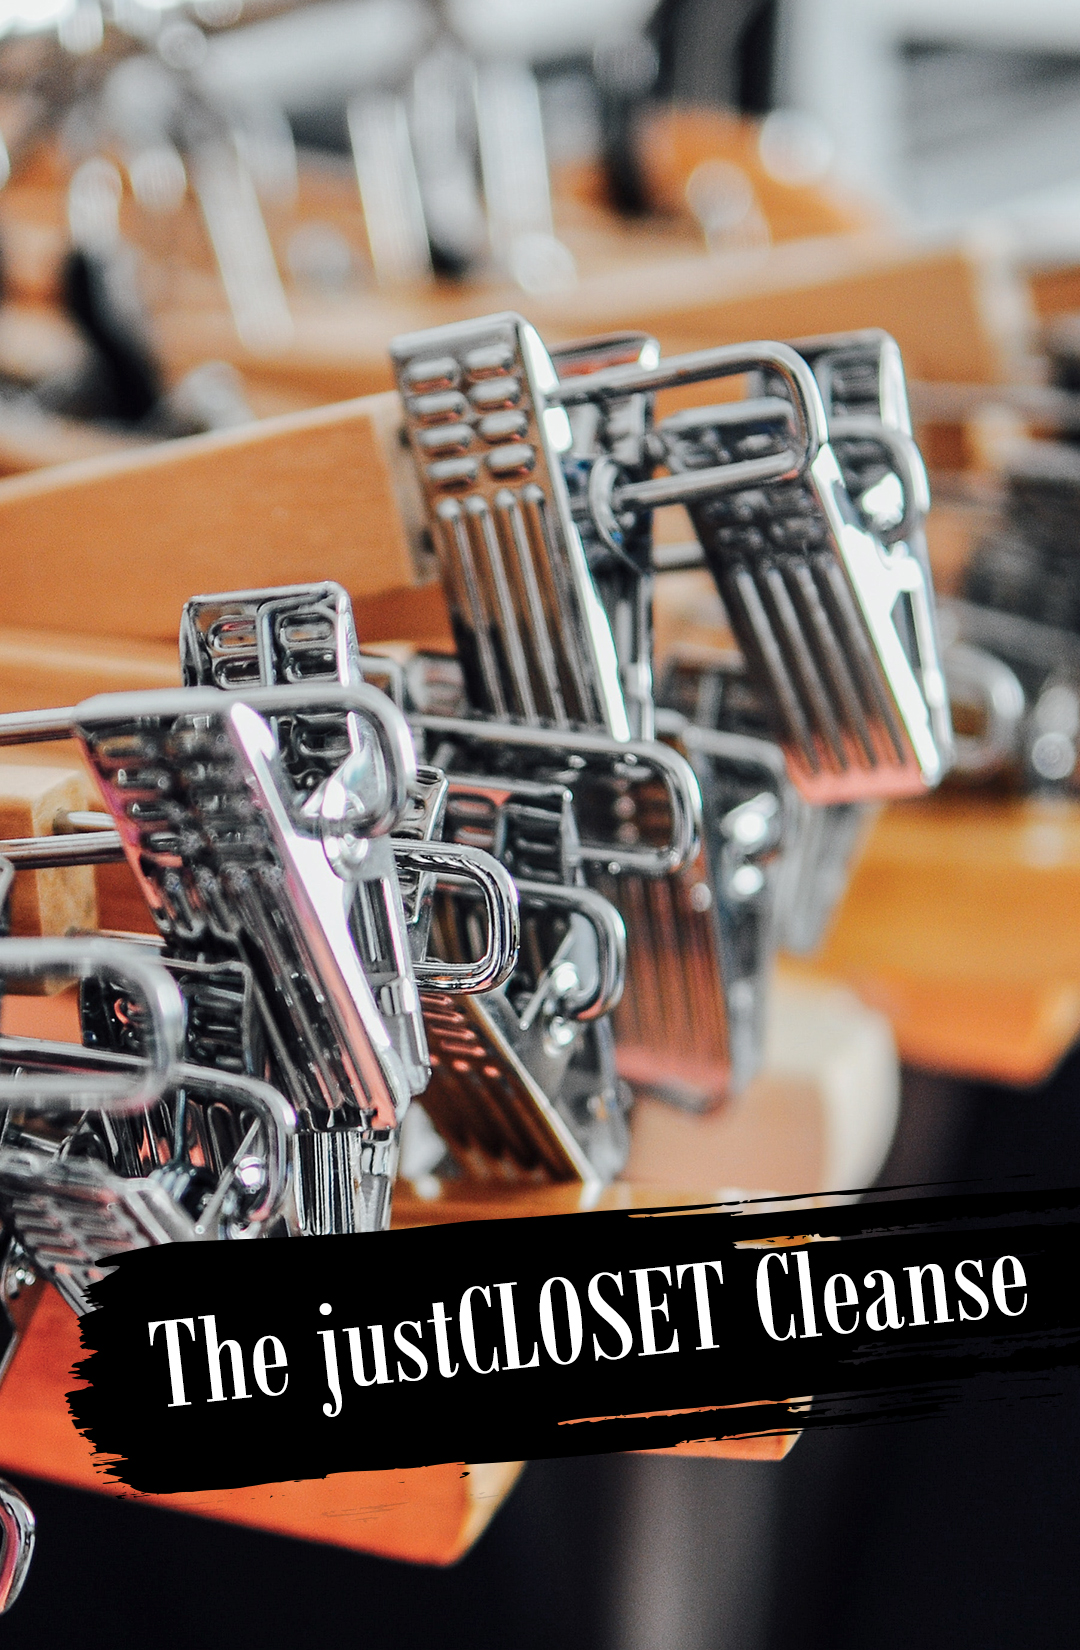 The justCLOSET Cleanse.jpg